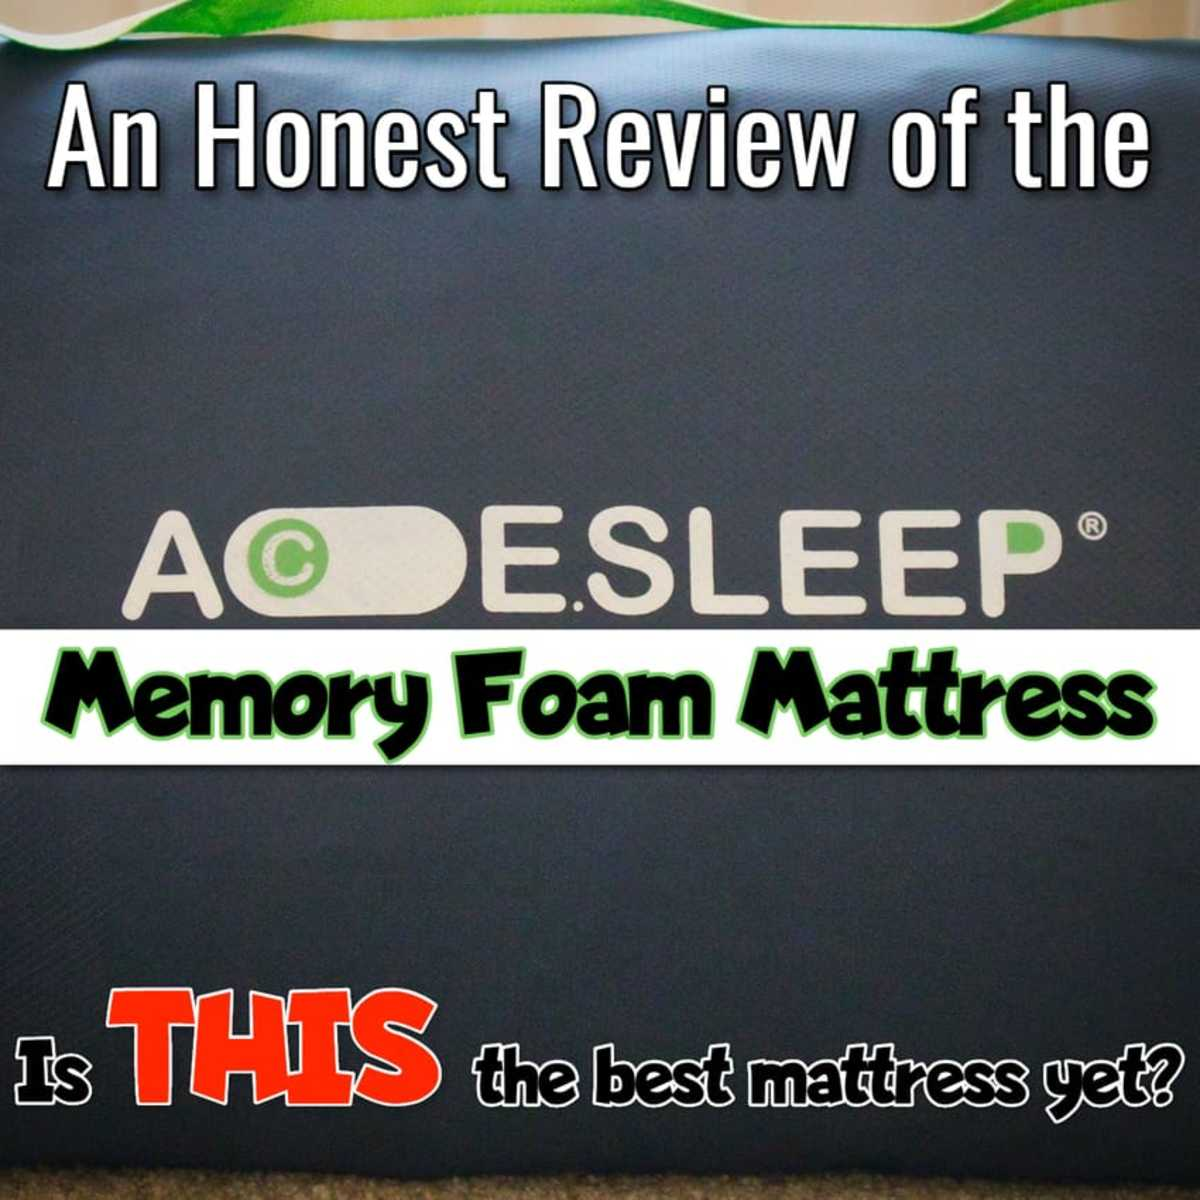 Acesleep Mattress: The Best Memory Foam for Side Sleepers?